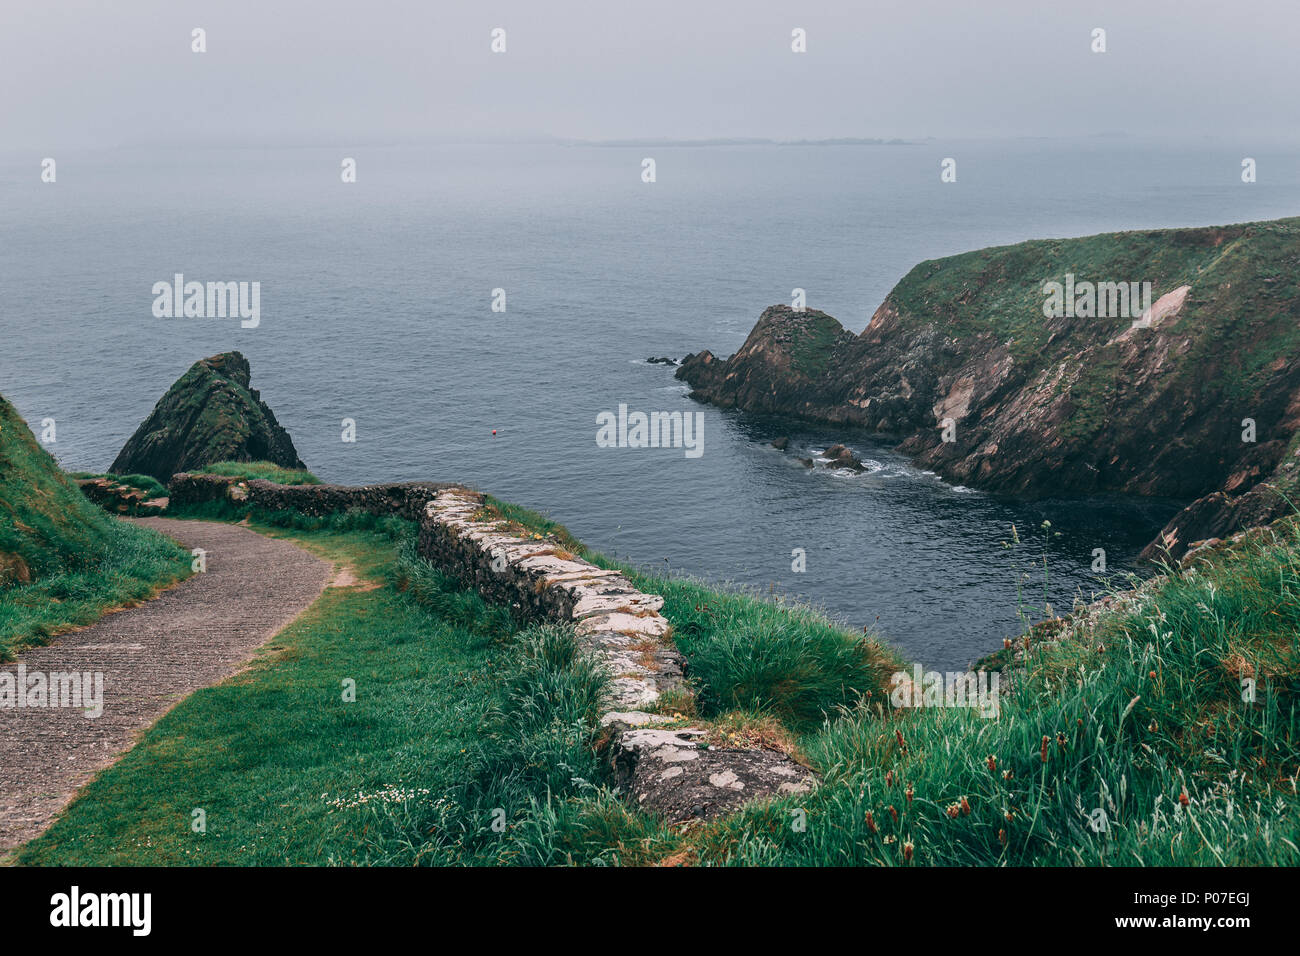 View from the iconic Dunquin harbour pier, the most westerly tip of the Dingle Peninsula in county Kerry, Ireland Stock Photo